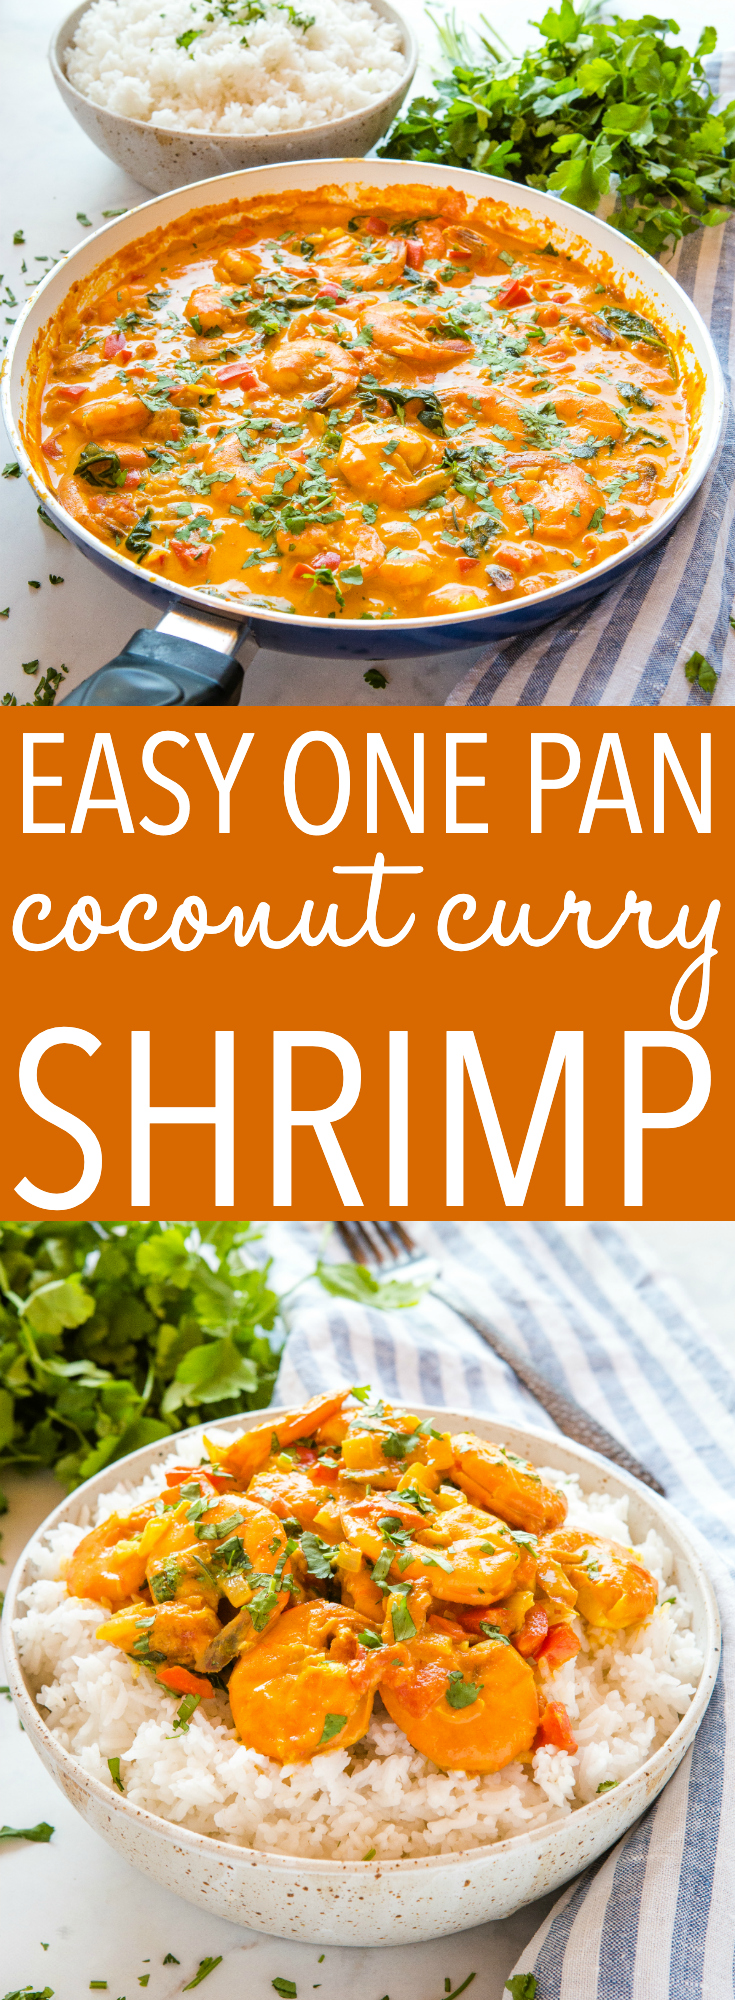 This Easy One Pan Coconut Curry Shrimp is the perfect easy healthy weeknight meal served over rice! Make it dairy-free and with fresh or frozen shrimp! Recipe from thebusybaker.ca! #curry #easy #recipe #shrimp #seafood #pescatarian #healthy #lowfat #lowcarb #rice #indianfood #homemade #weeknight #meal #family #foodblogger via @busybakerblog